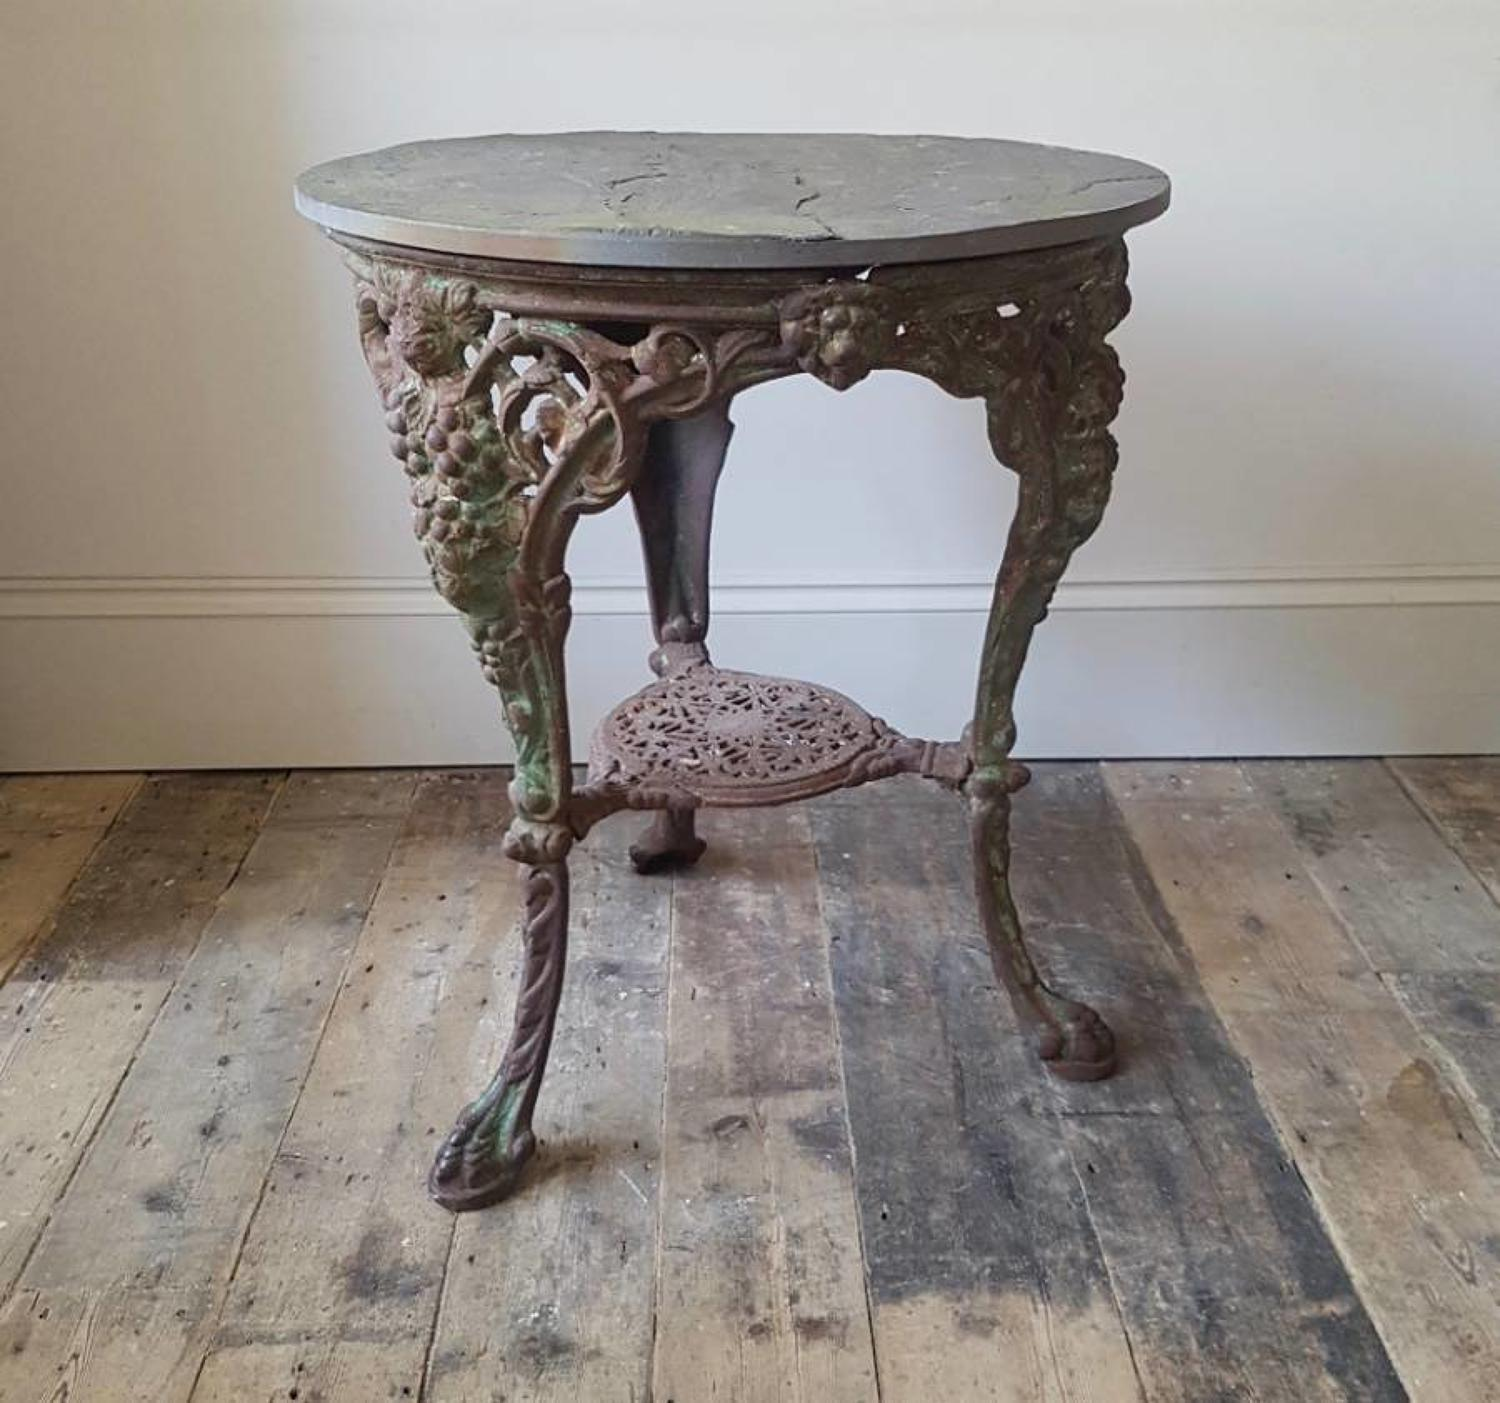 Nineteenth century cast iron table